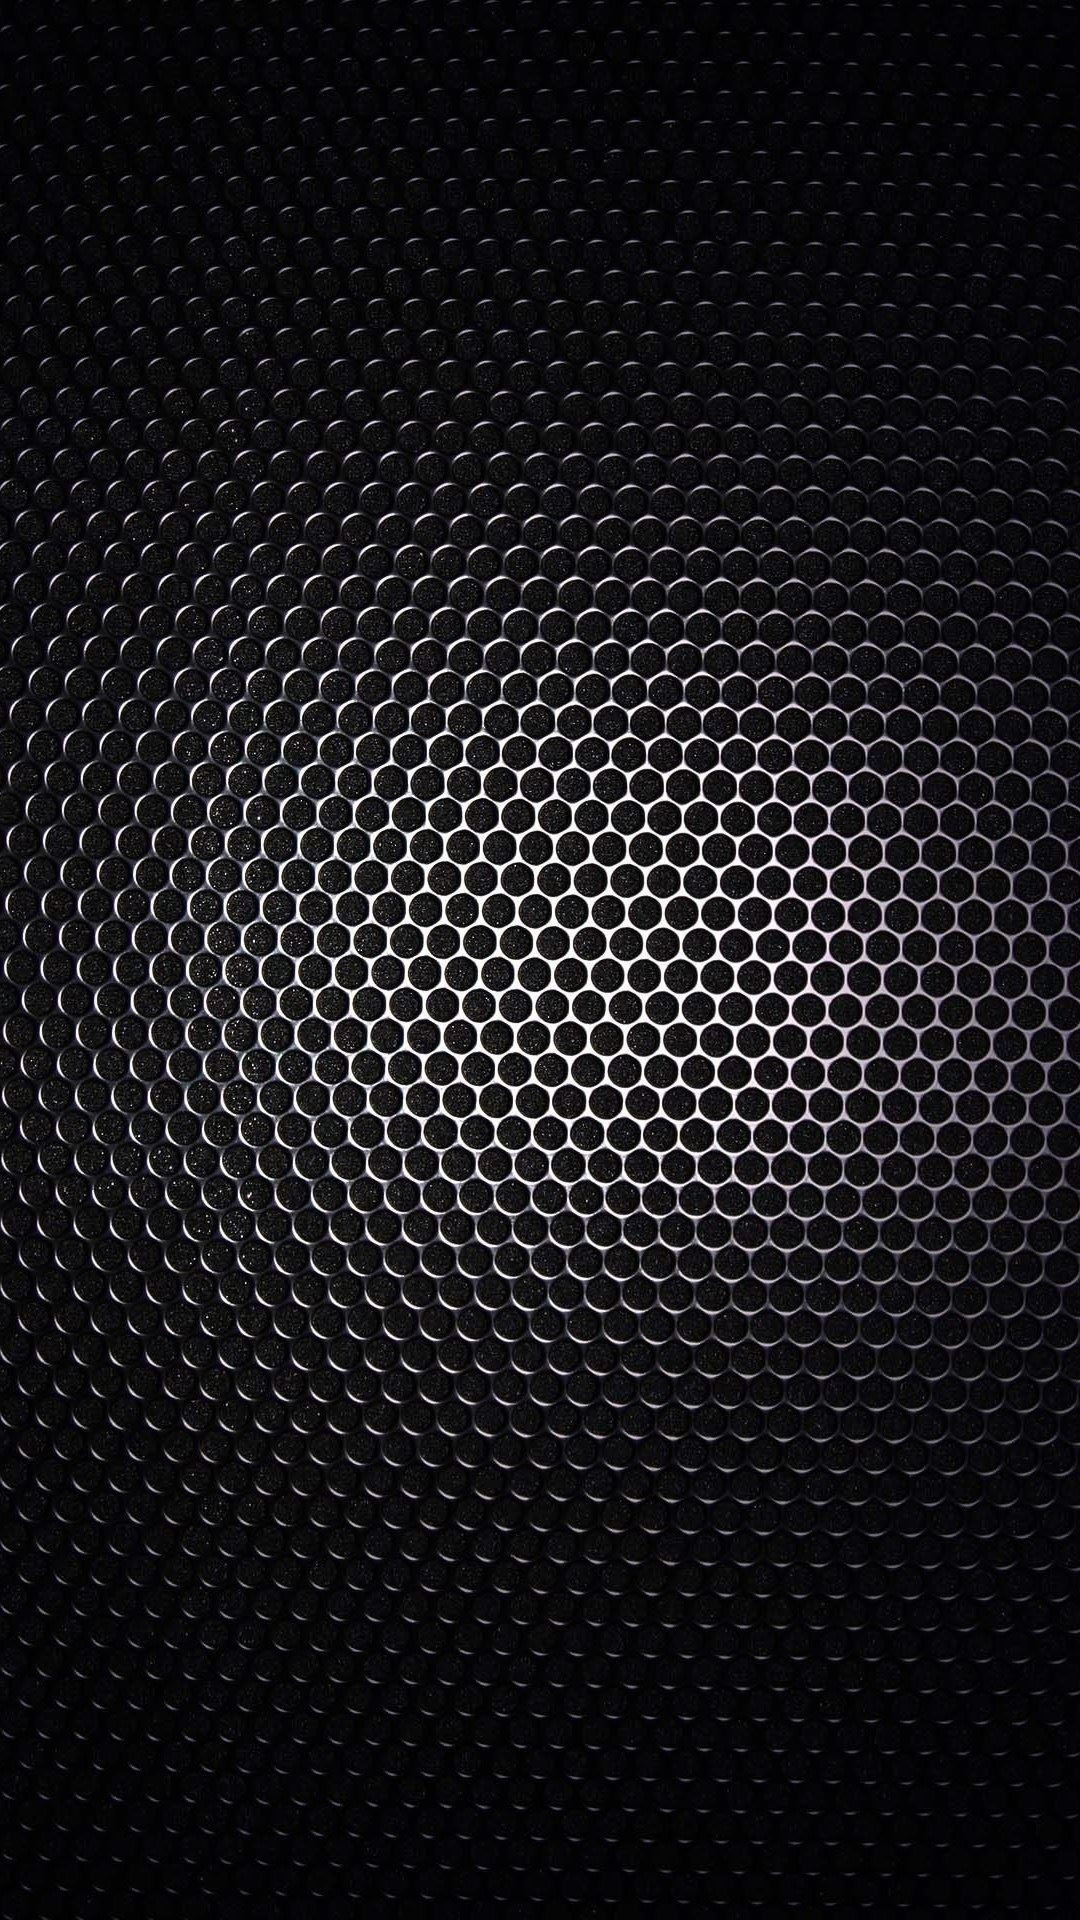 Res: 1080x1920, Android Dark Wallpapers Dark Metal Grid Pattern Android Wallpapers